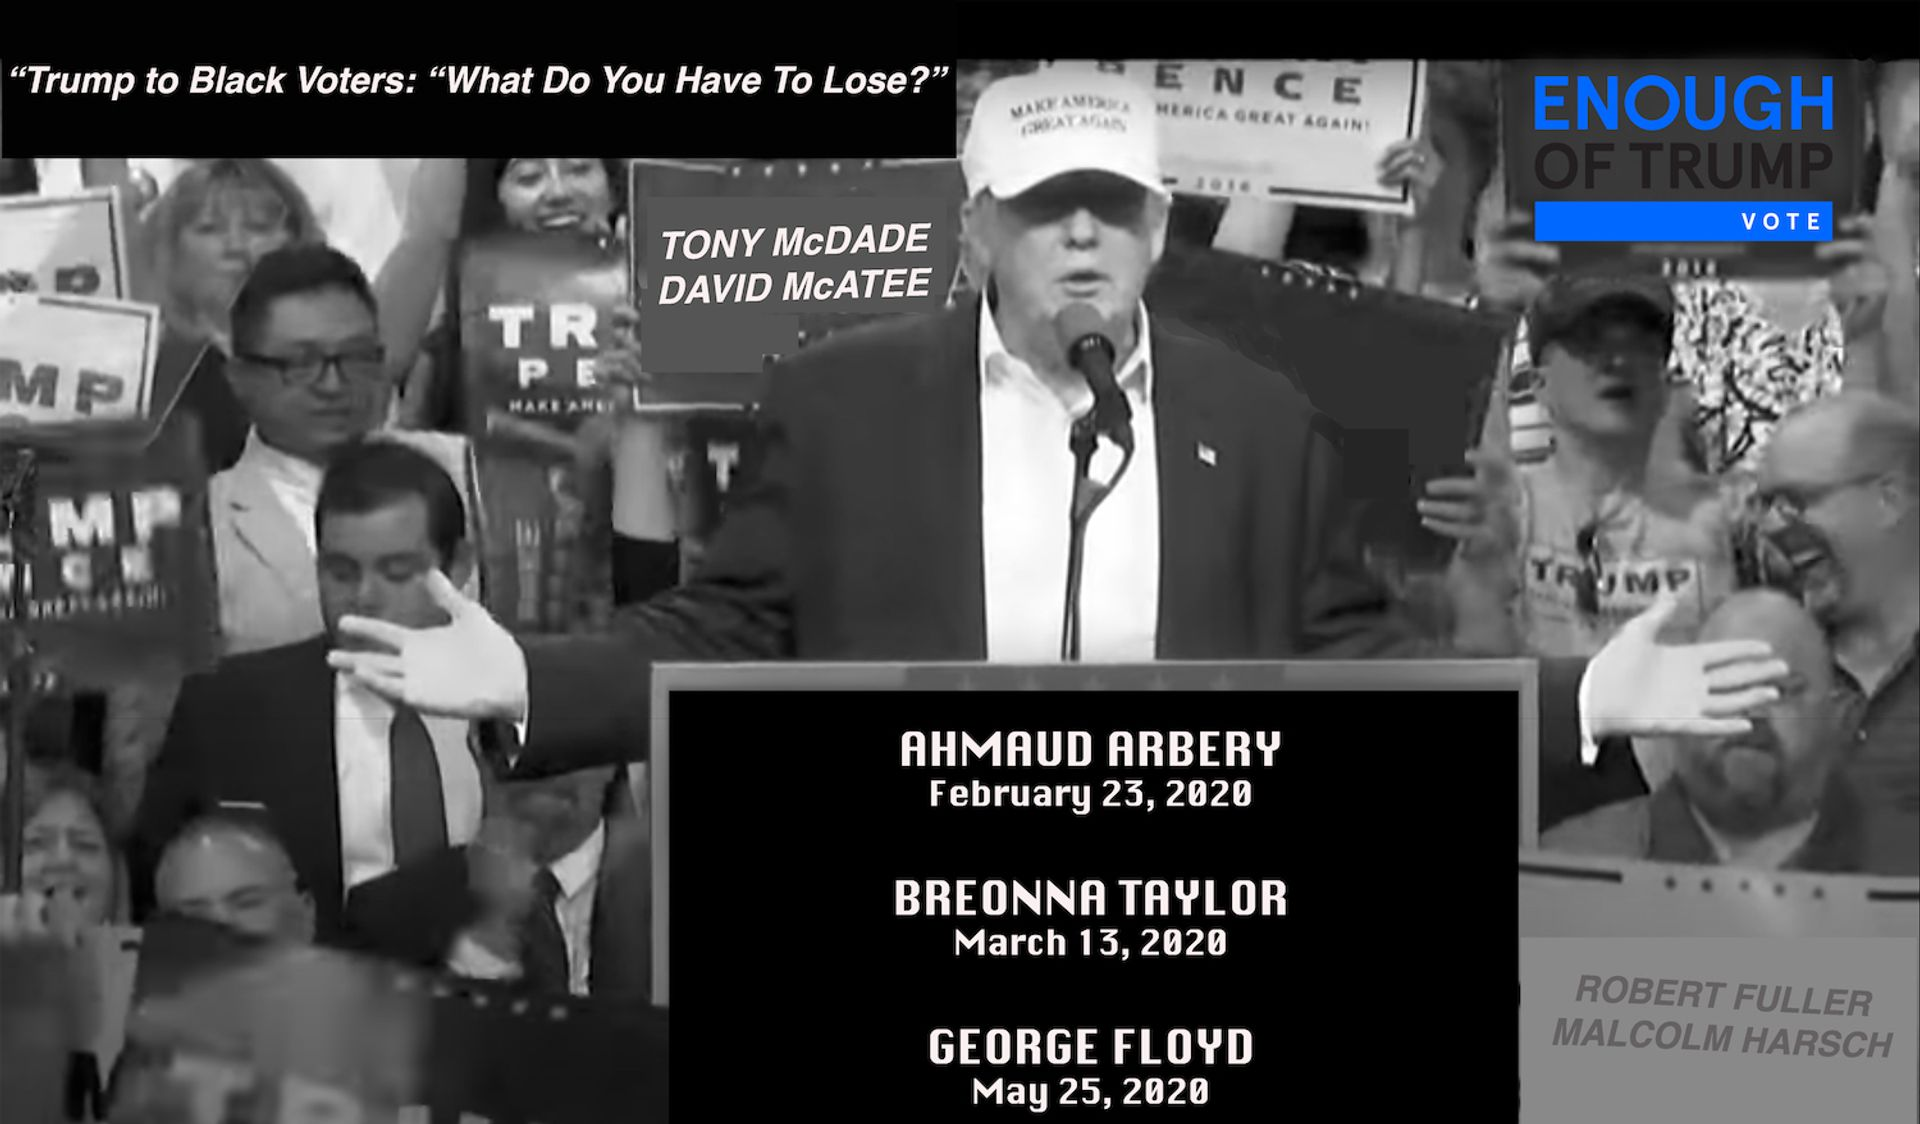 A work by LaToya Ruby Frazier in the Enough of Trump campaign People for the American Way